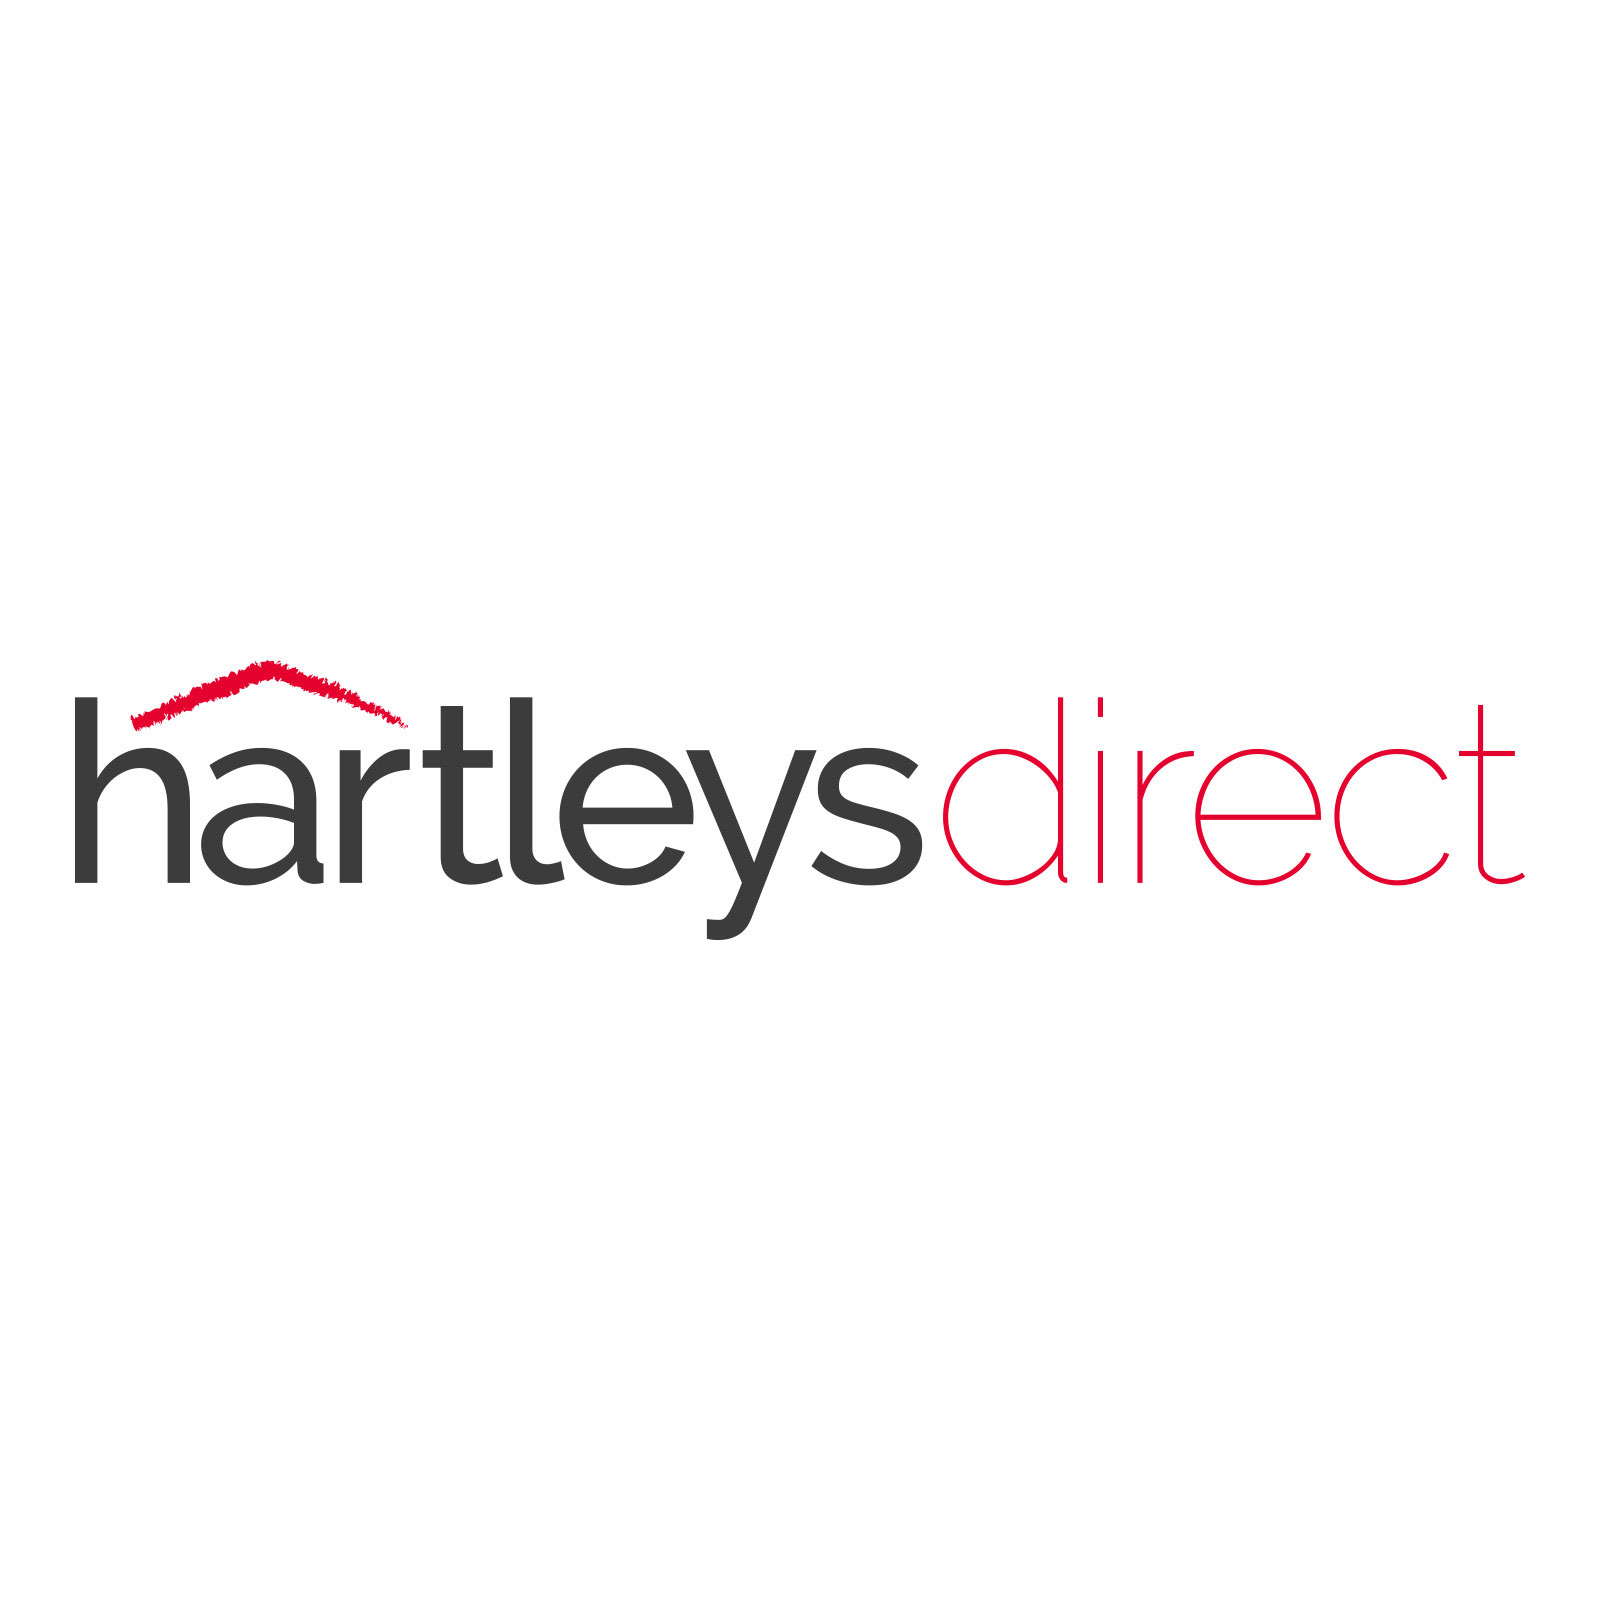 Hartleys-3-Panel-White-Cutout-Room-Divider-on-a-White-Background.jpg